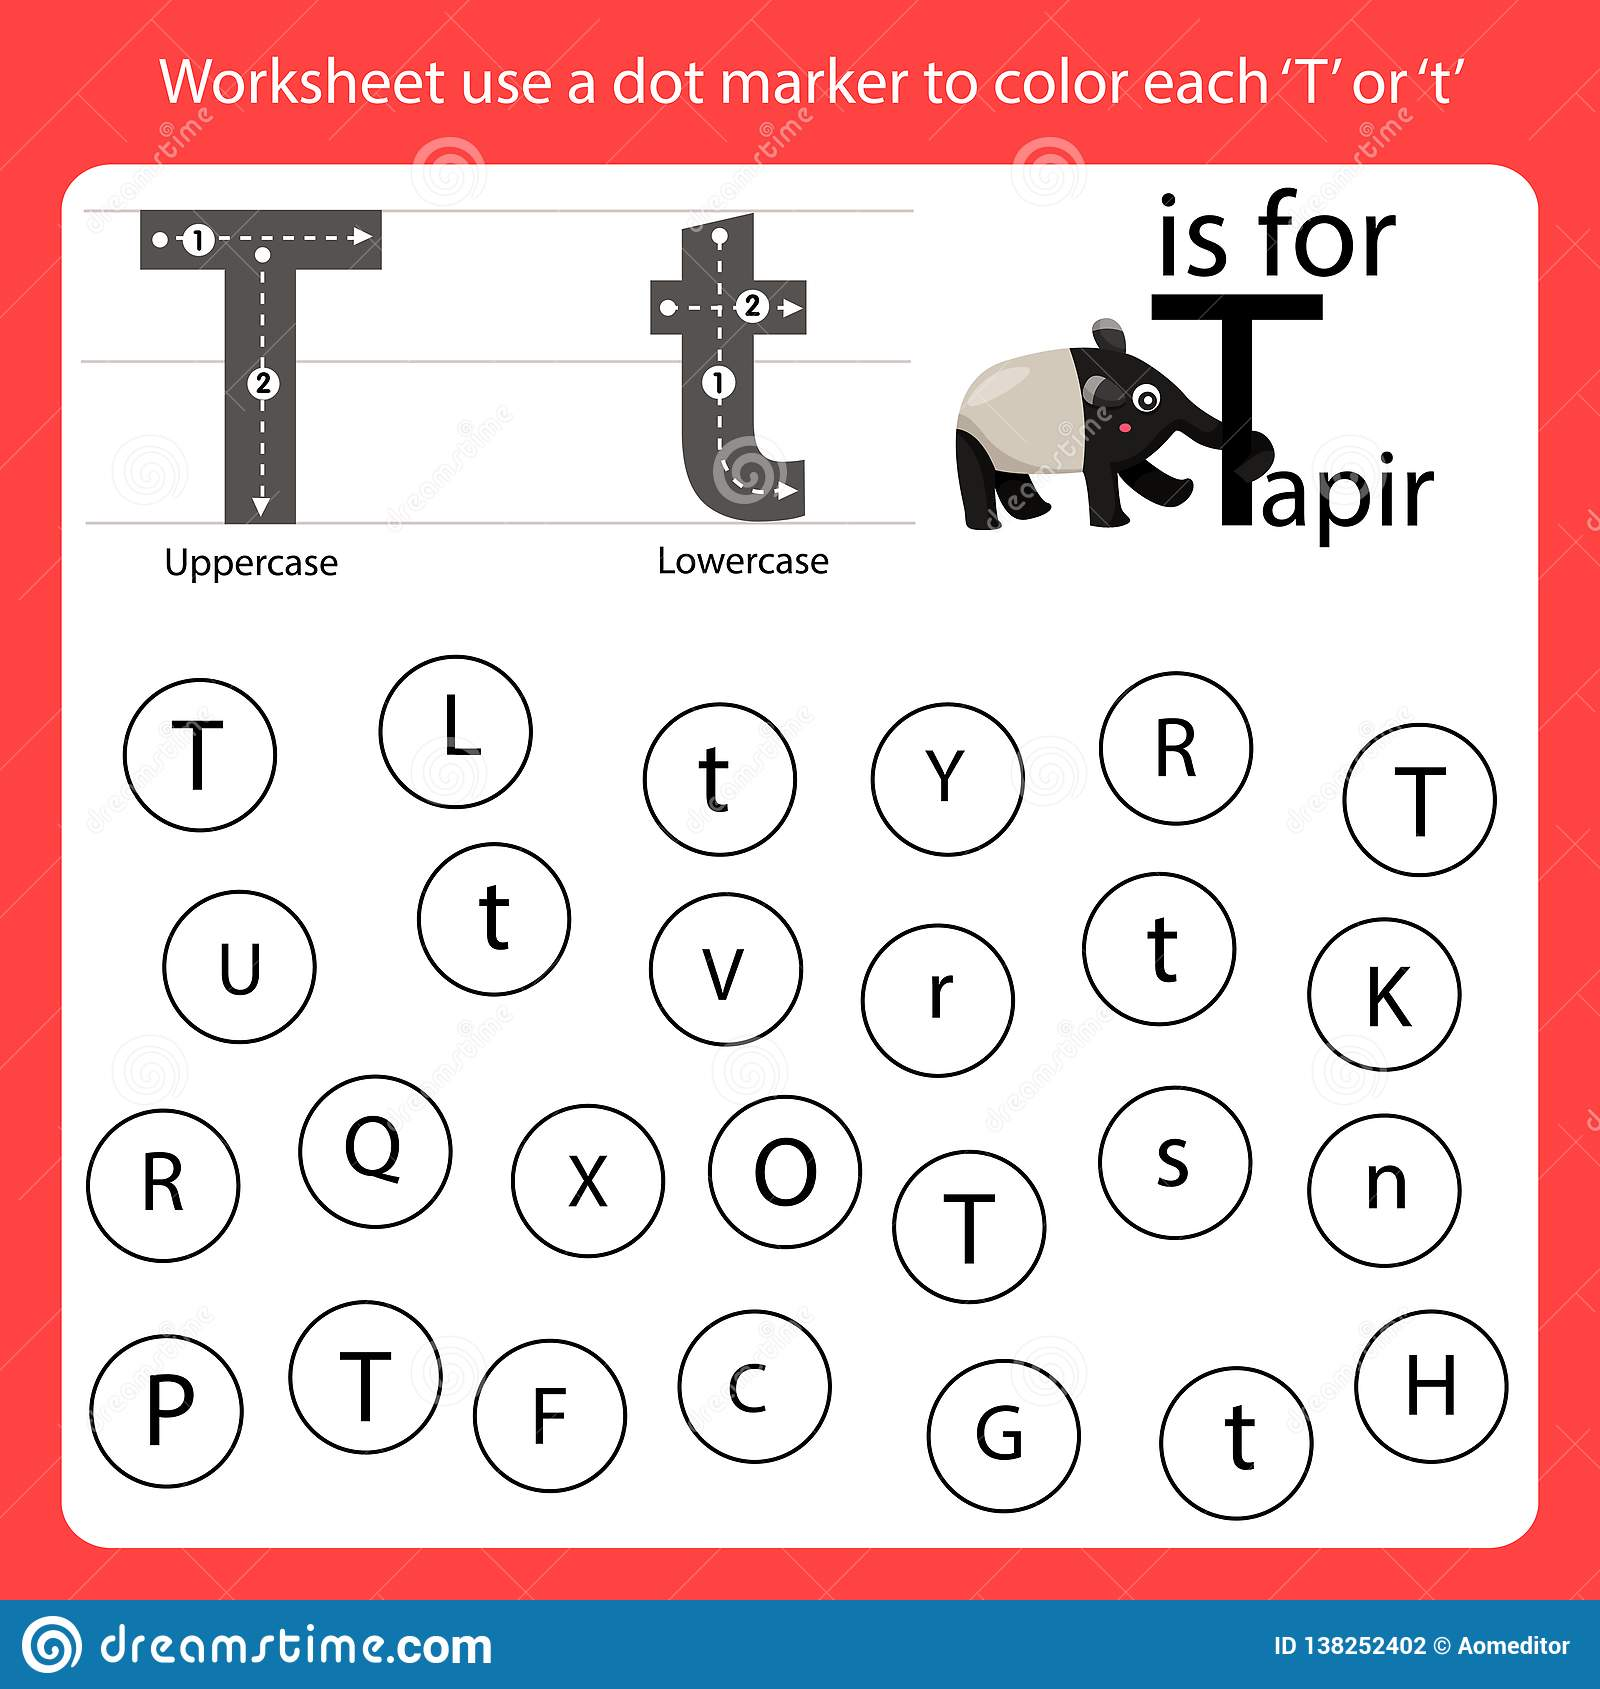 Find The Letter Worksheet Use A Dot Marker To Color Each T